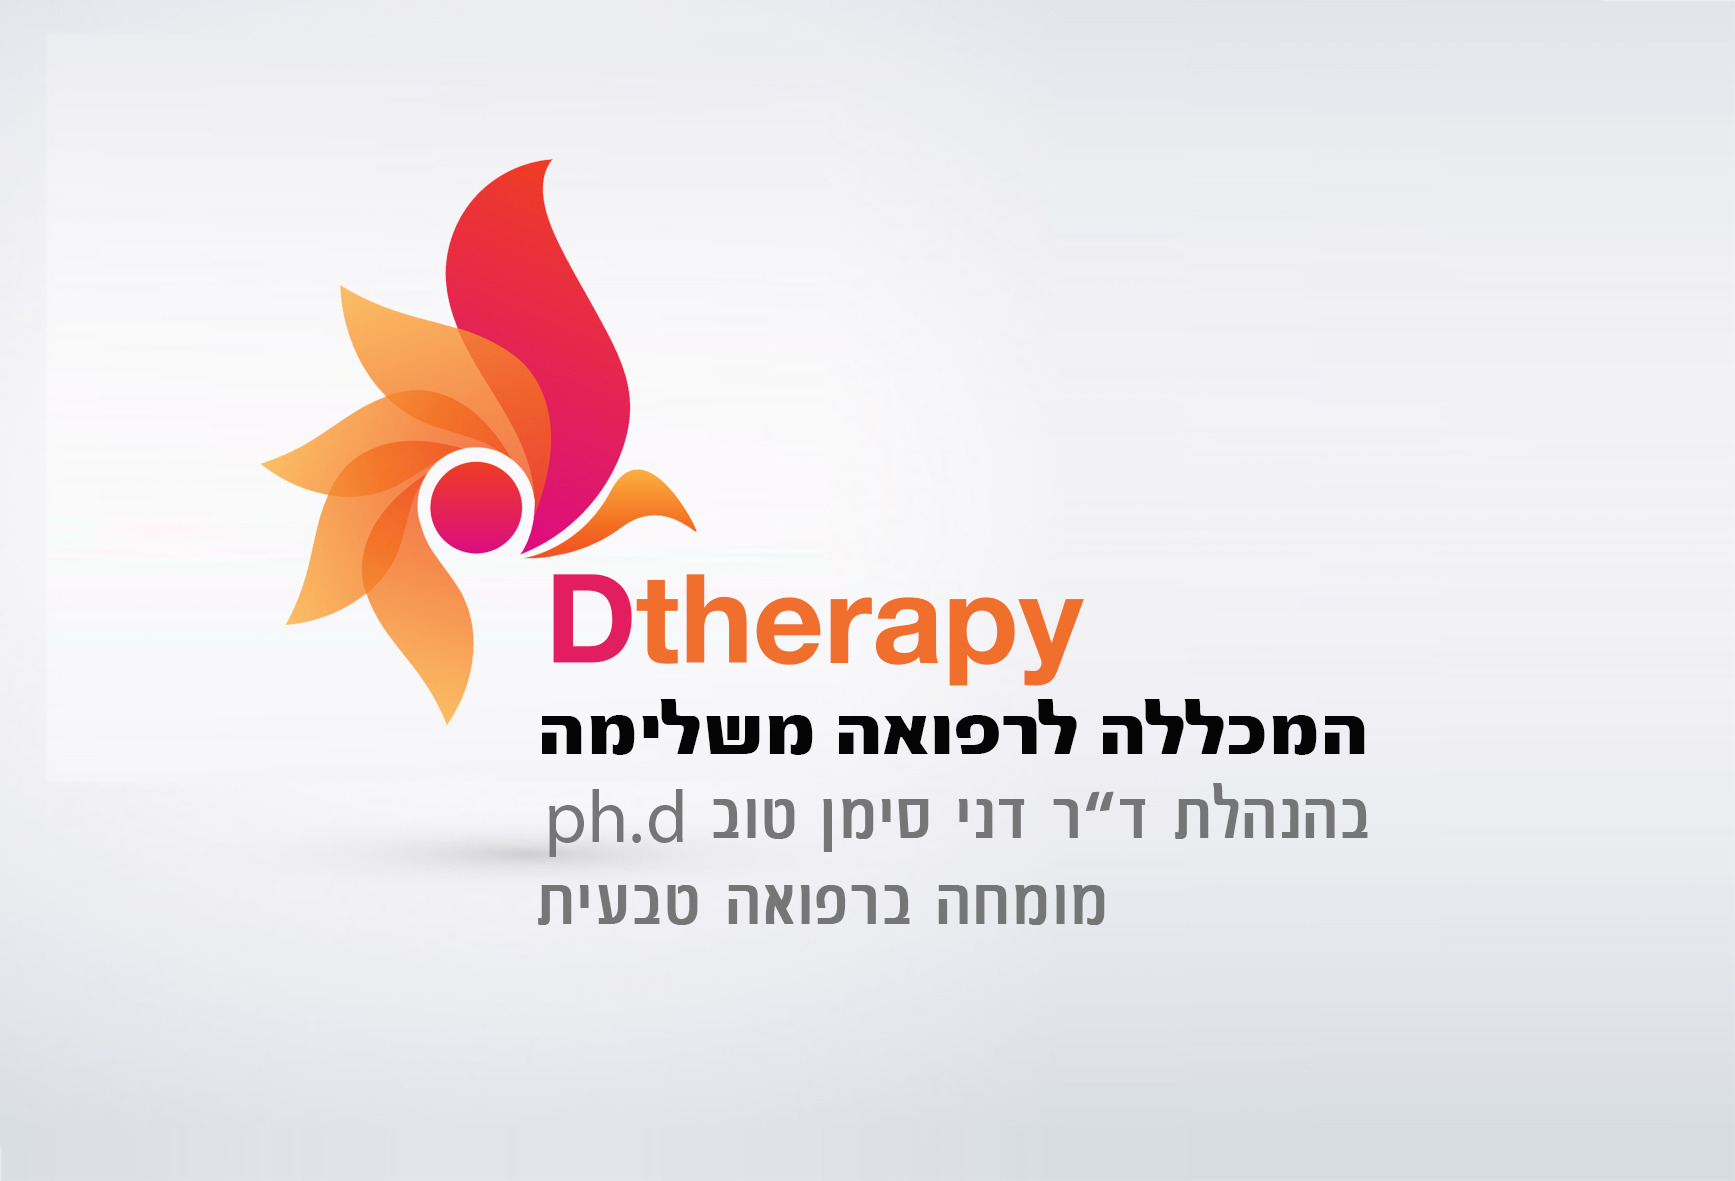 Dtherapy